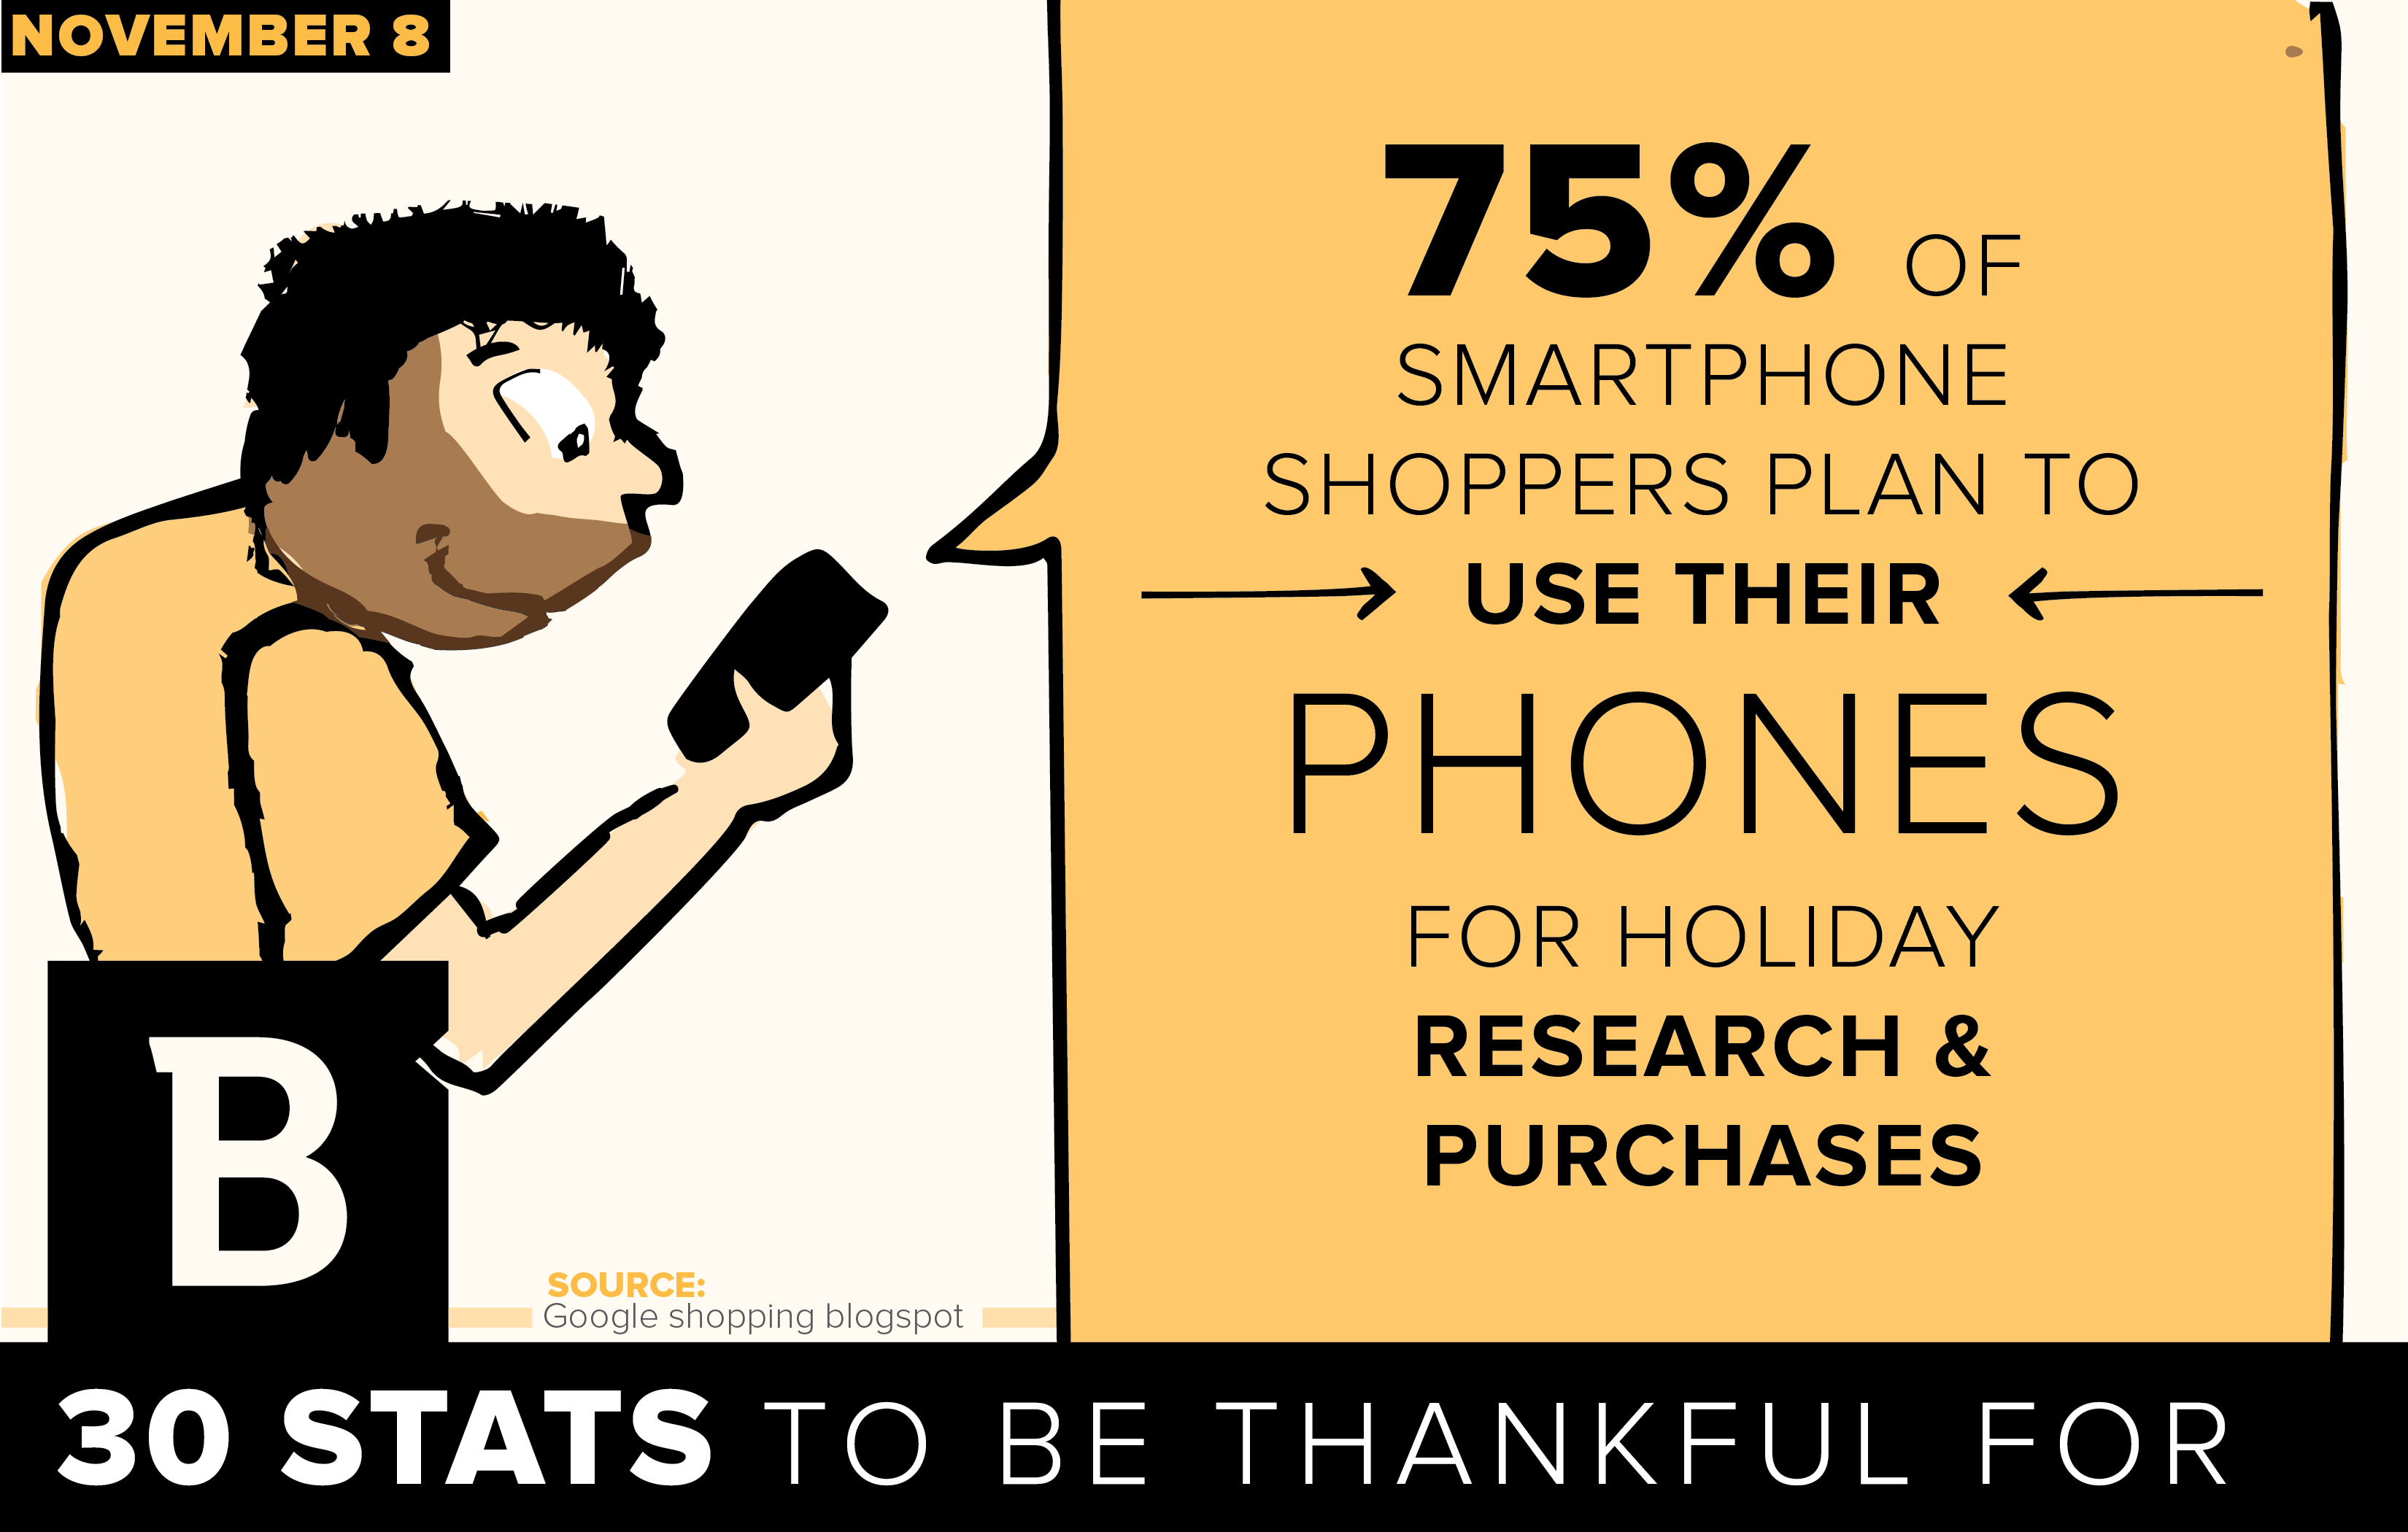 It's important to think about mobile when planning a holiday marketing strategy as smartphone and tablet use rises.